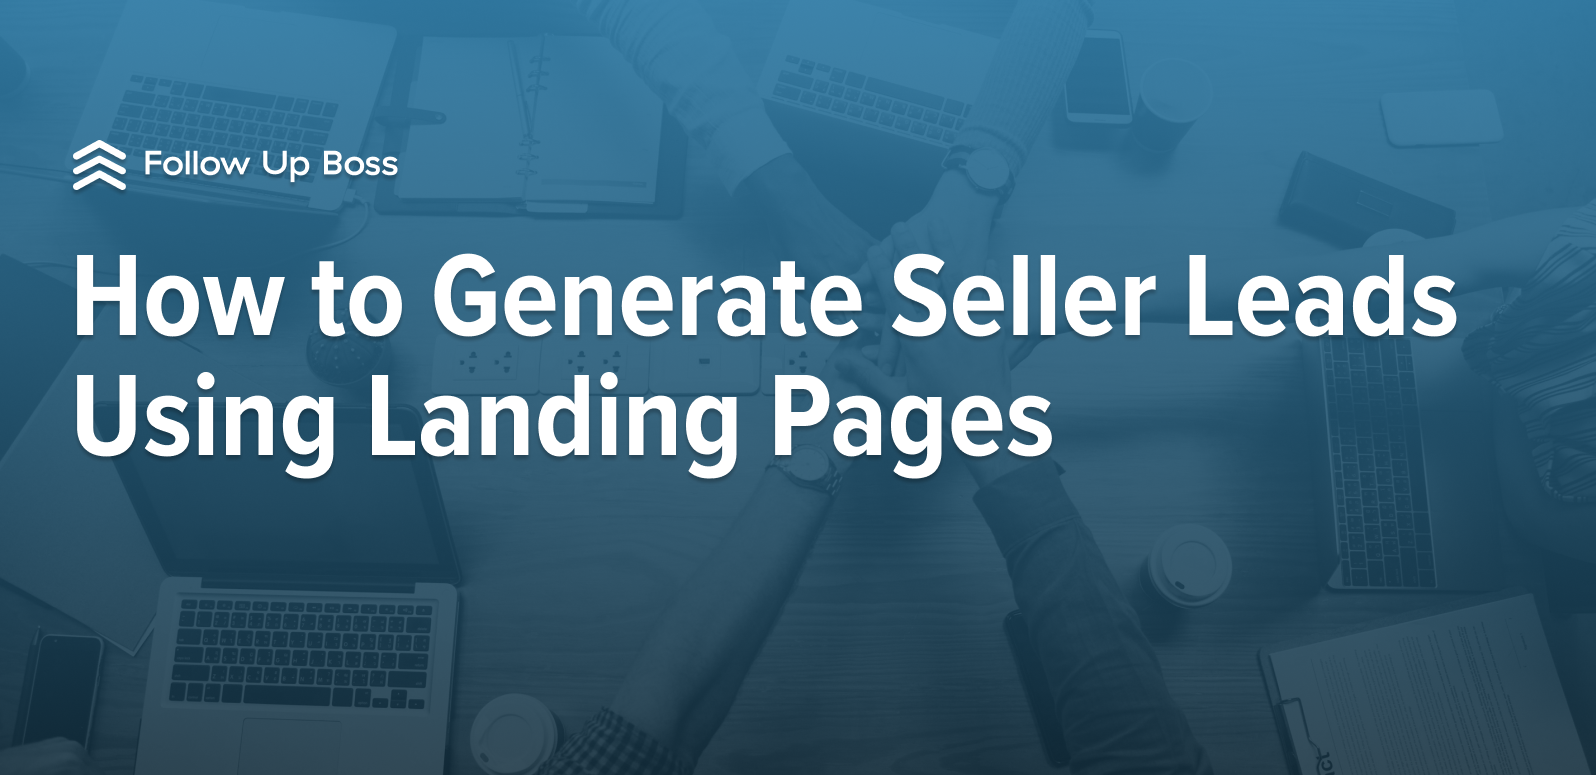 How to Generate Seller Leads Using Landing Pages